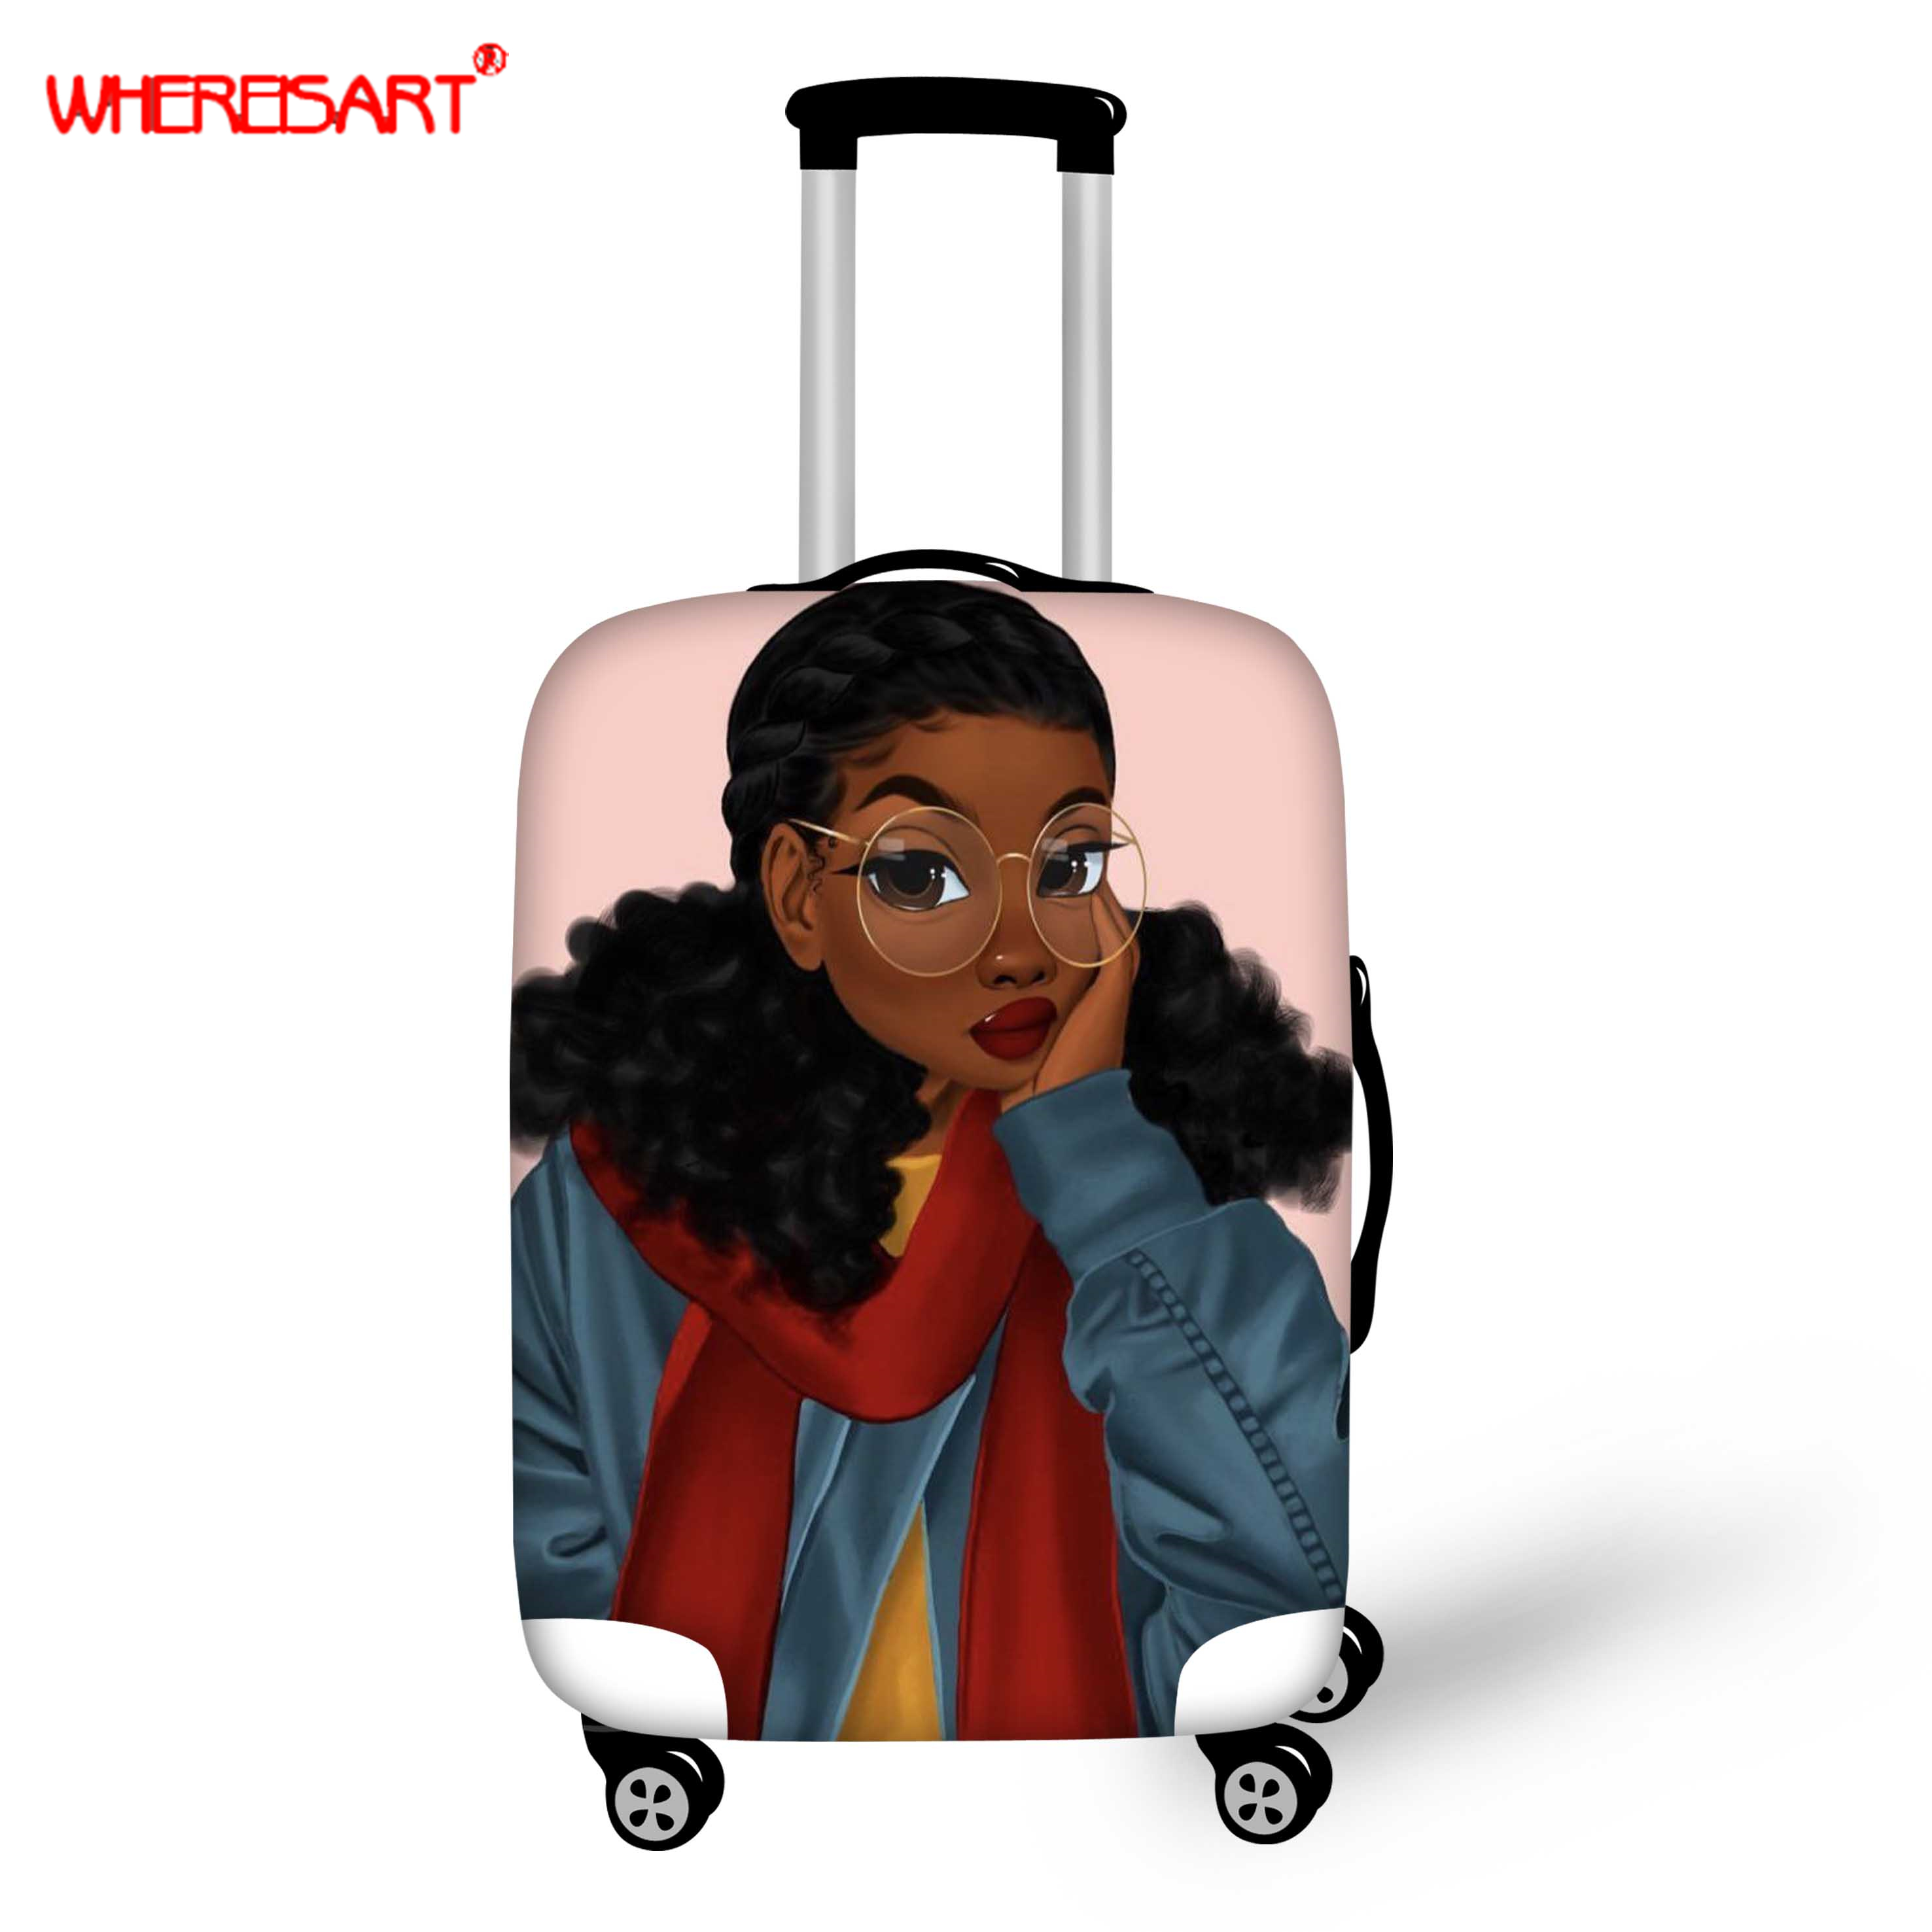 WHEREISART Afro Black Girls Magic Travel Luggage Protection Cover,18-30 Inch Suitcase Elastic Case Covers, Trolley Dust Cover